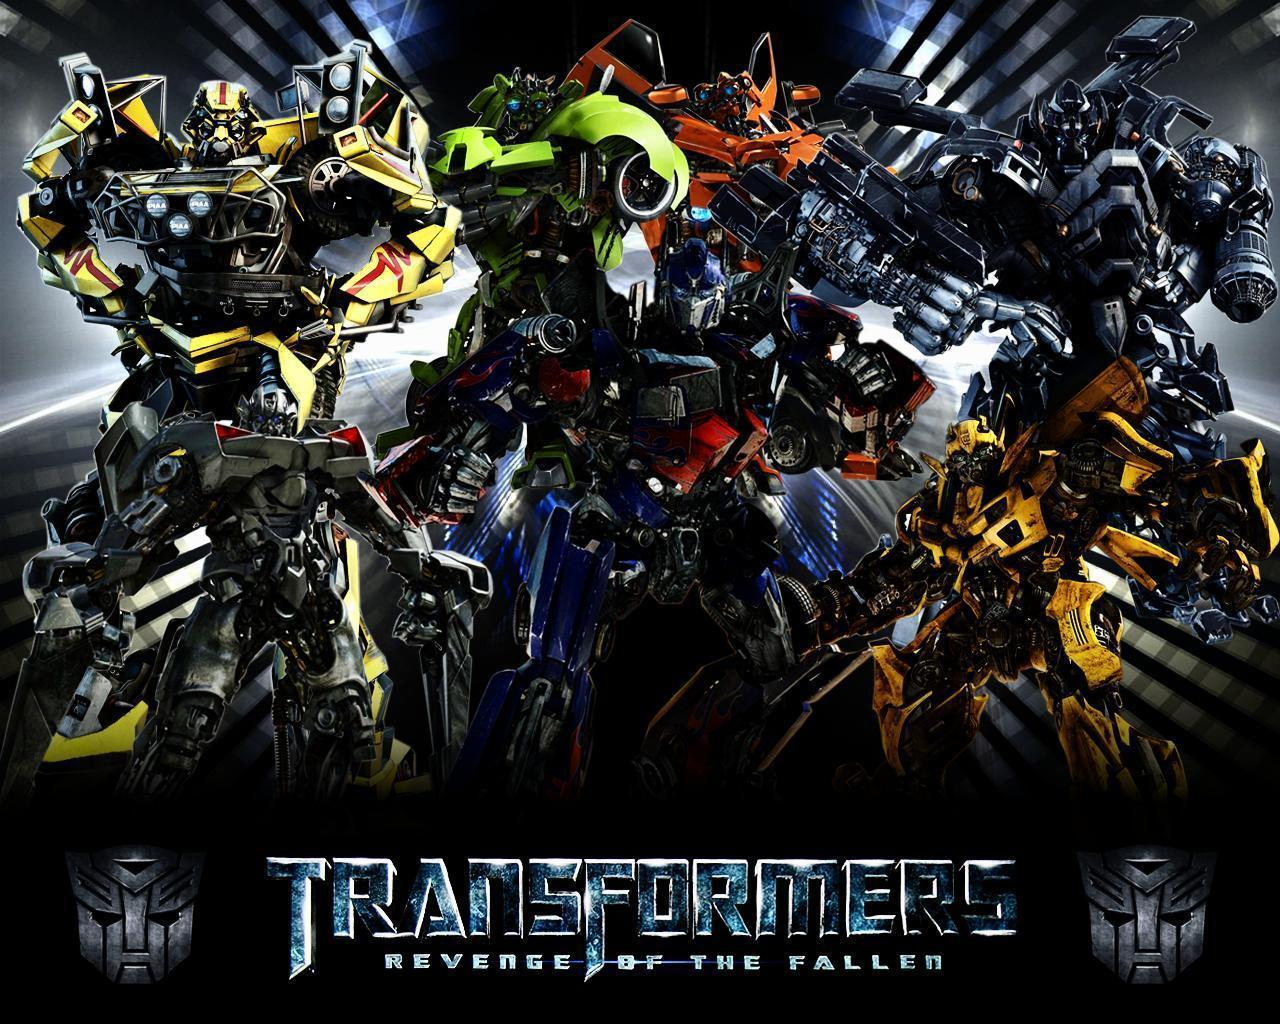 Free Download Transformers Wallpapers Autobots 1280x1024 For Your Desktop Mobile Tablet Explore 78 Transformer Wallpaper Transformers Prime Wallpaper Asus Transformer Wallpaper